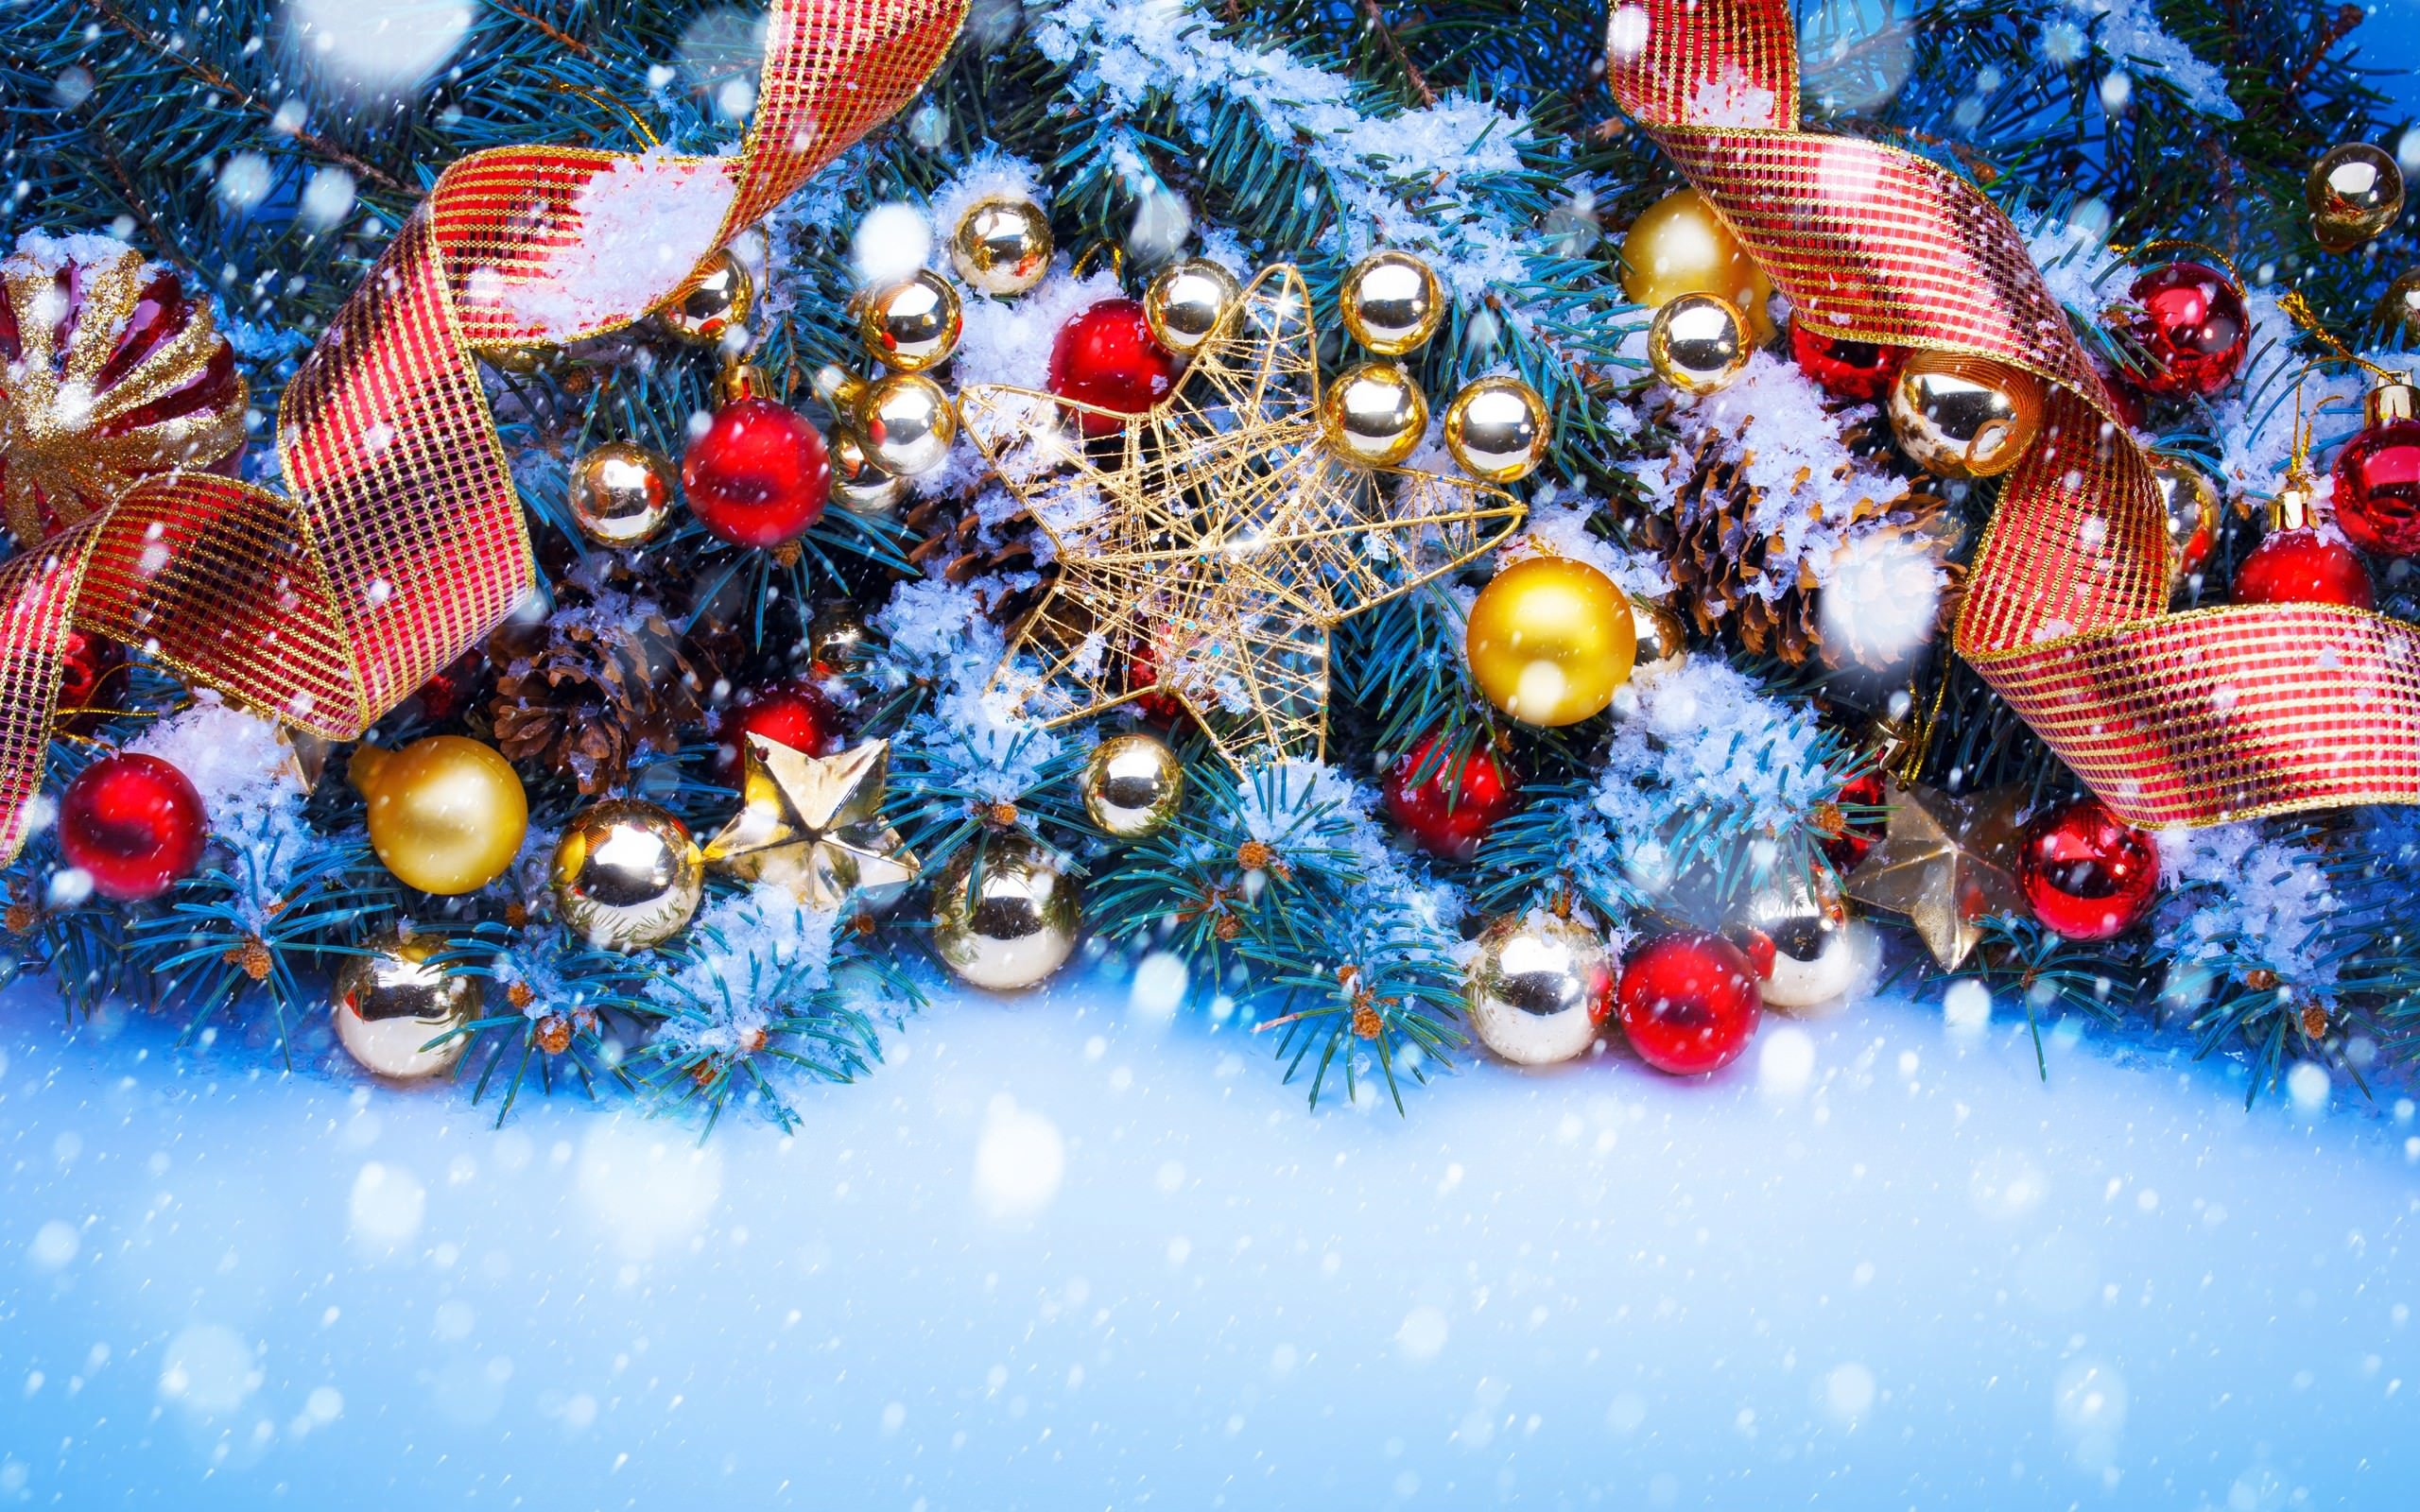 Shining Stars Christmas Ornaments and Decorations Wallpaper for Desktop 2560x1600